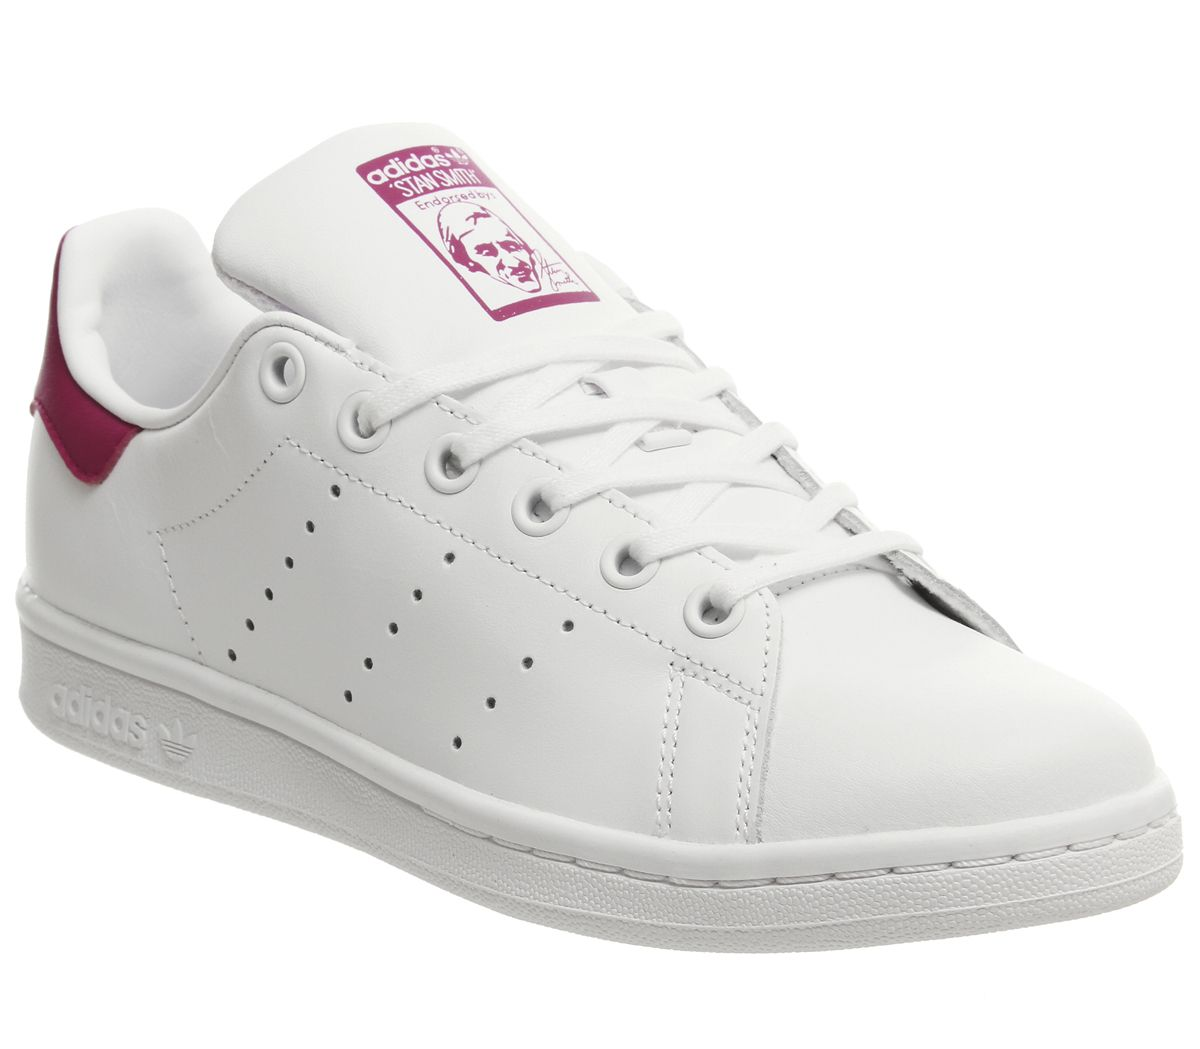 Détails sur Short Femme Adidas Stan Smith GS Baskets Blanc White Bold Rose  Baskets- afficher le titre d'origine